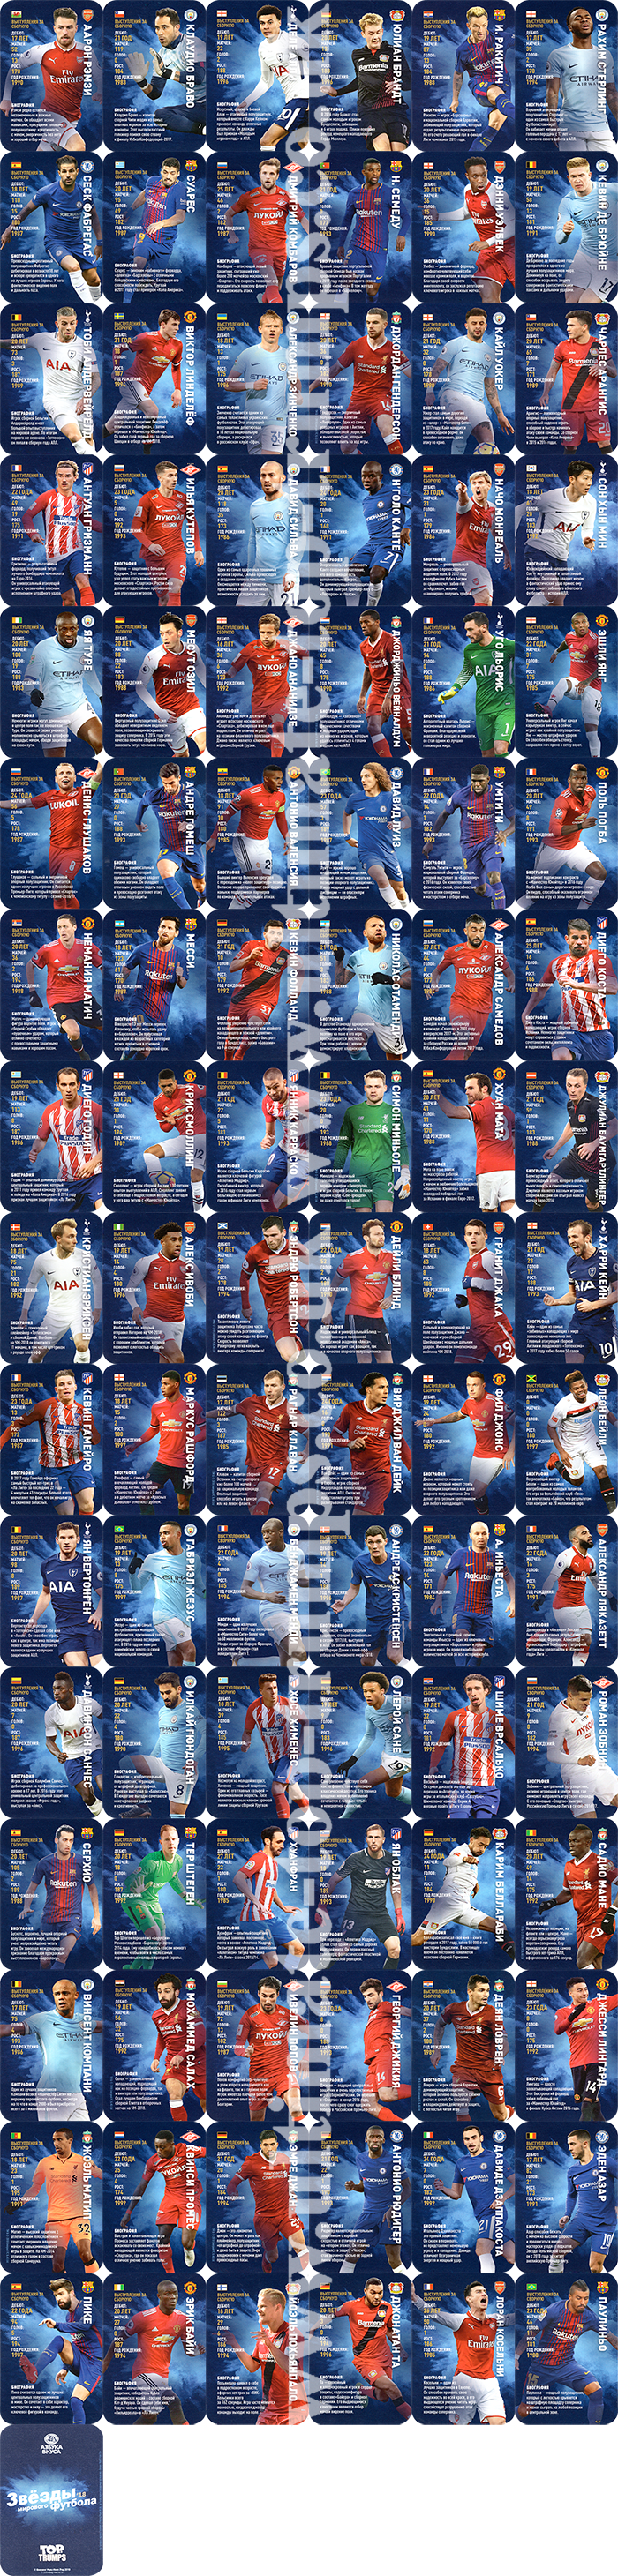 World Football Stars 2018